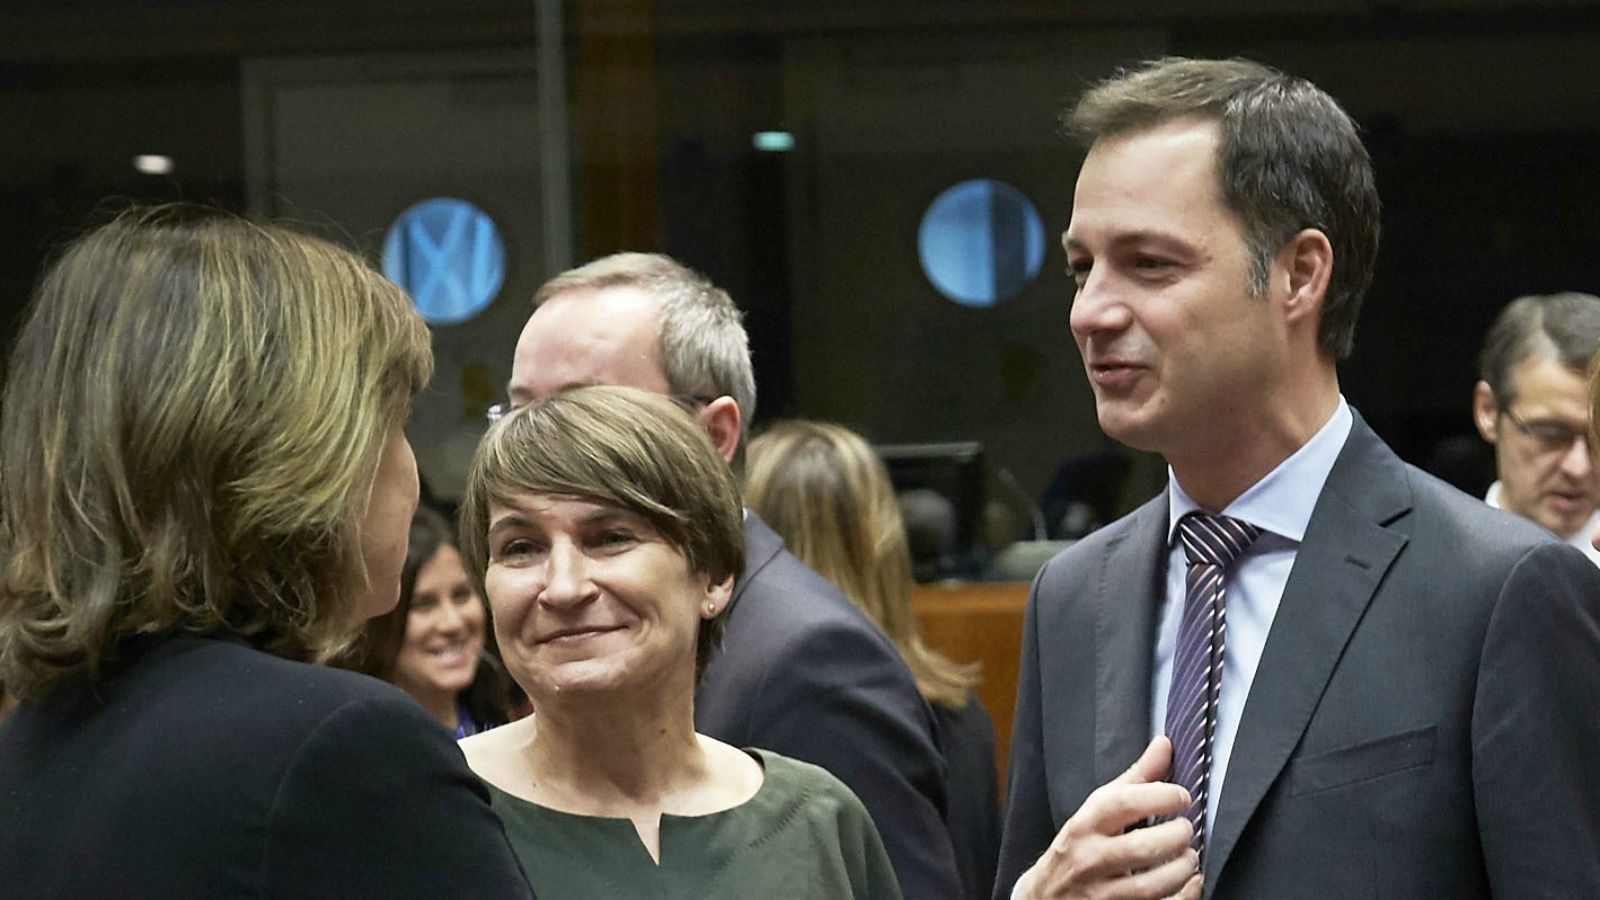 Lilianne-Ploumen-and-Alexander-De-Croo-1